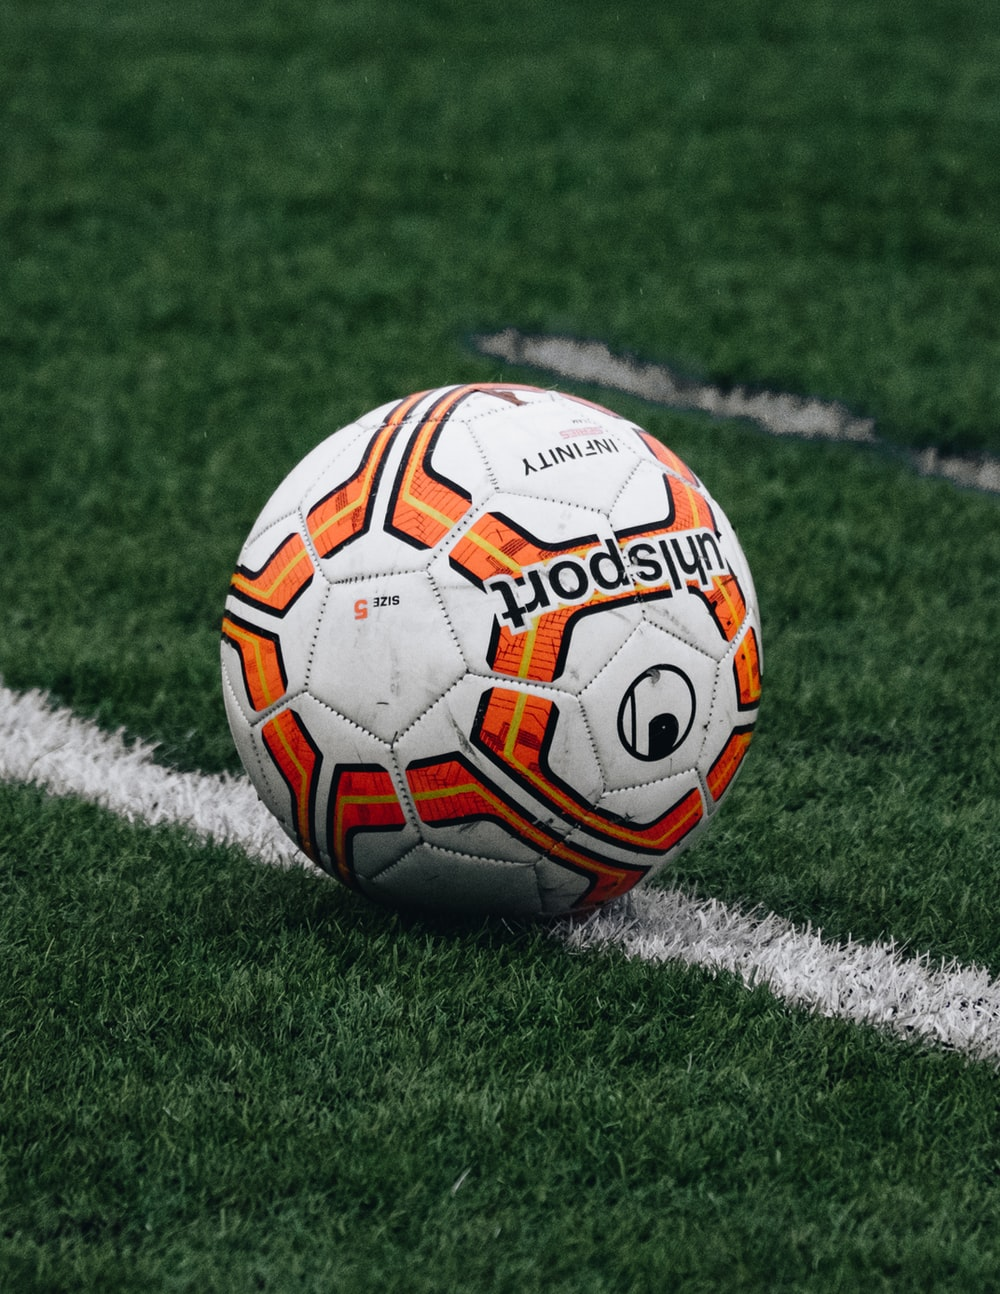 red and orange soccer ball on green grass field